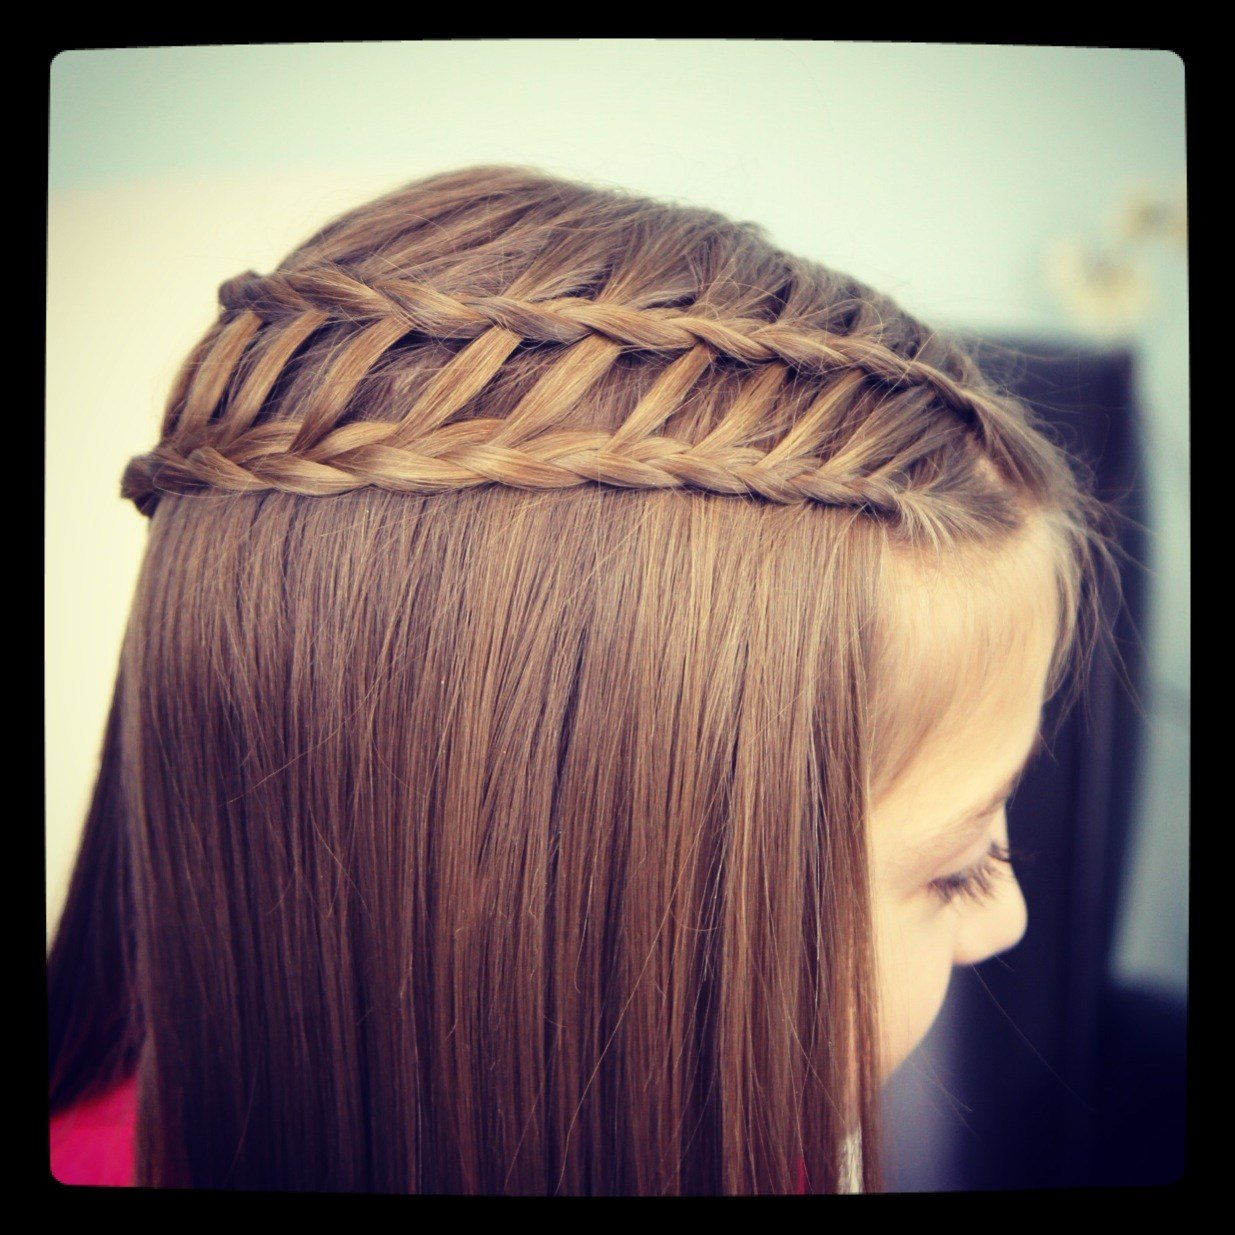 New Feather Waterfall Ladder Braid Combo 2 In 1 Hairstyles Cute Girls Hairstyles Ideas With Pictures Original 1024 x 768